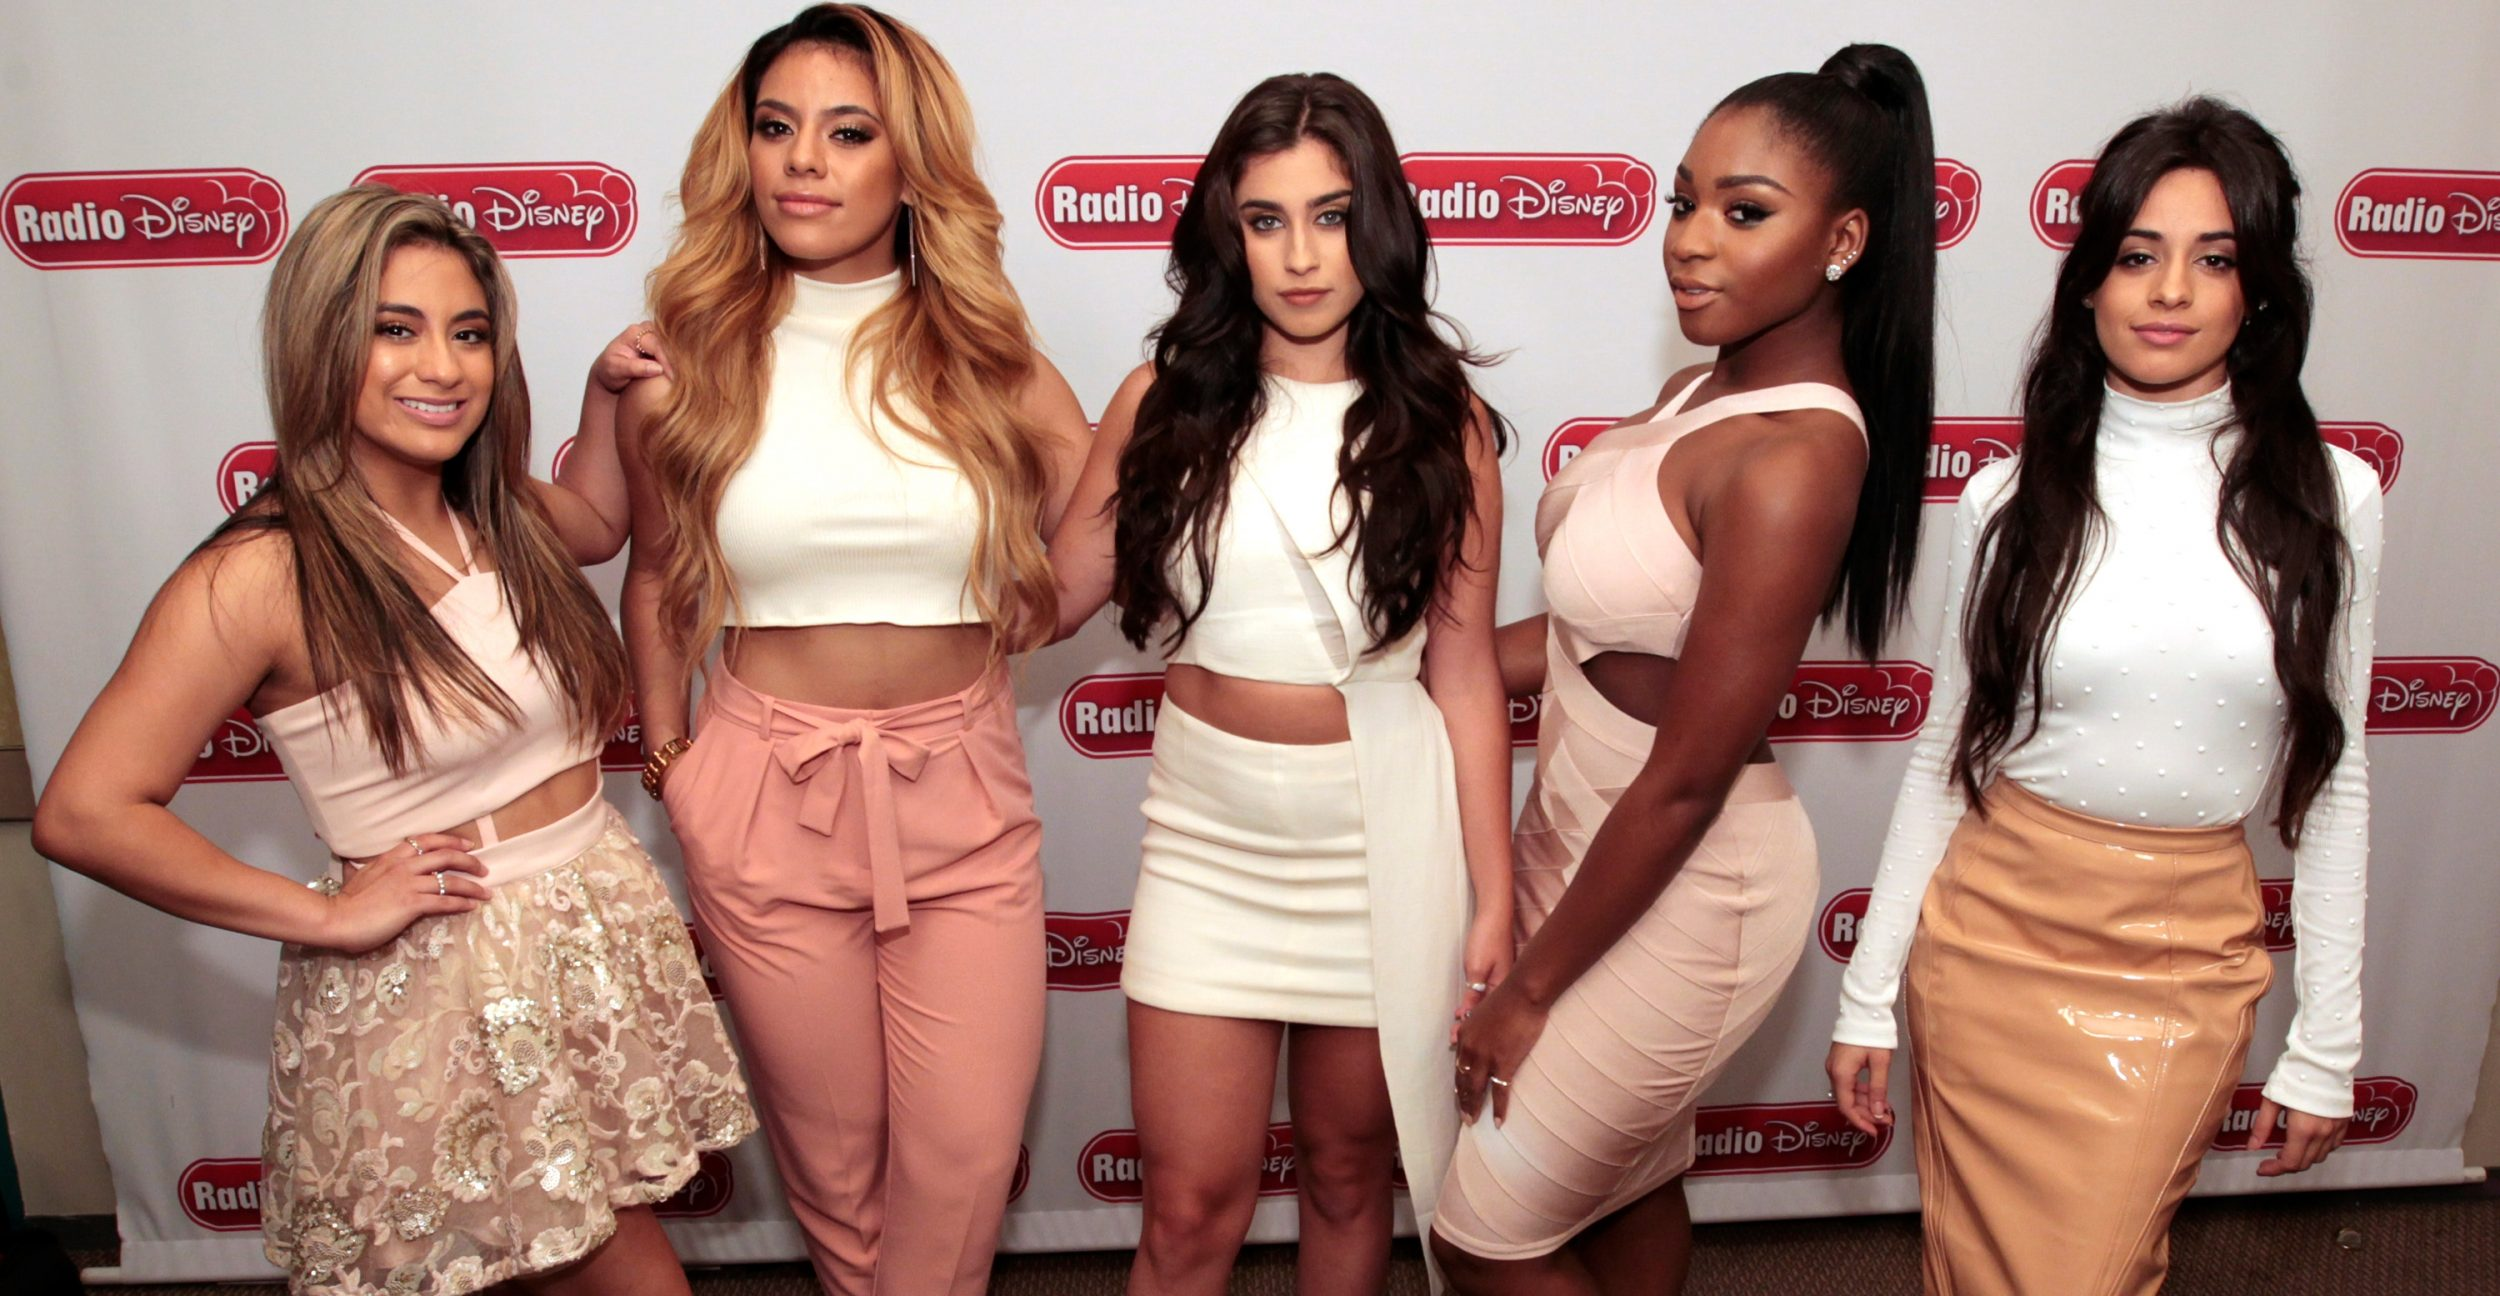 Fifth harmony 39 s that 39 s my girl receives radio disney airplay for Hot family pics